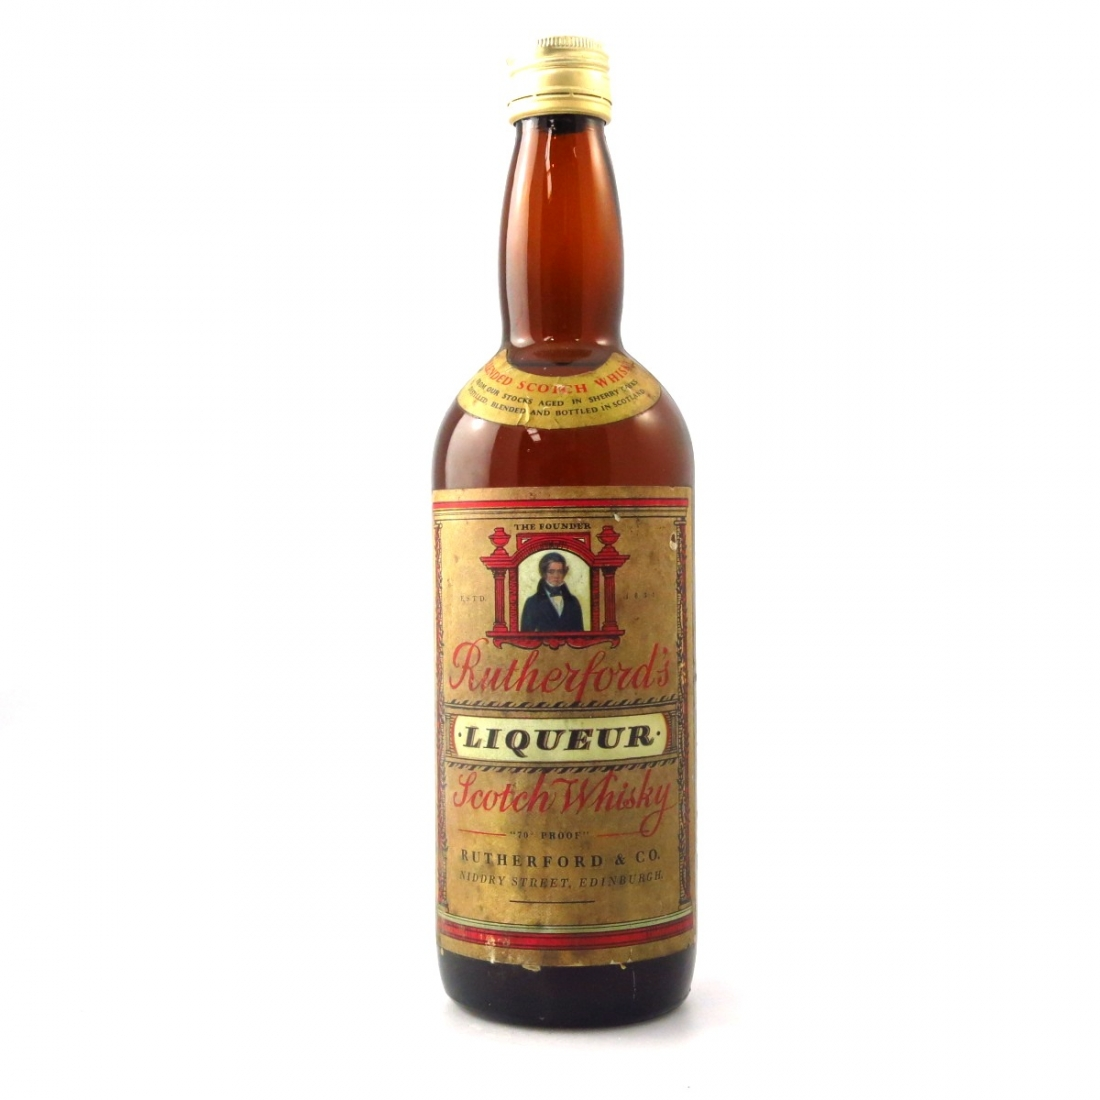 Rutherford's Liqueur Scotch 1970s